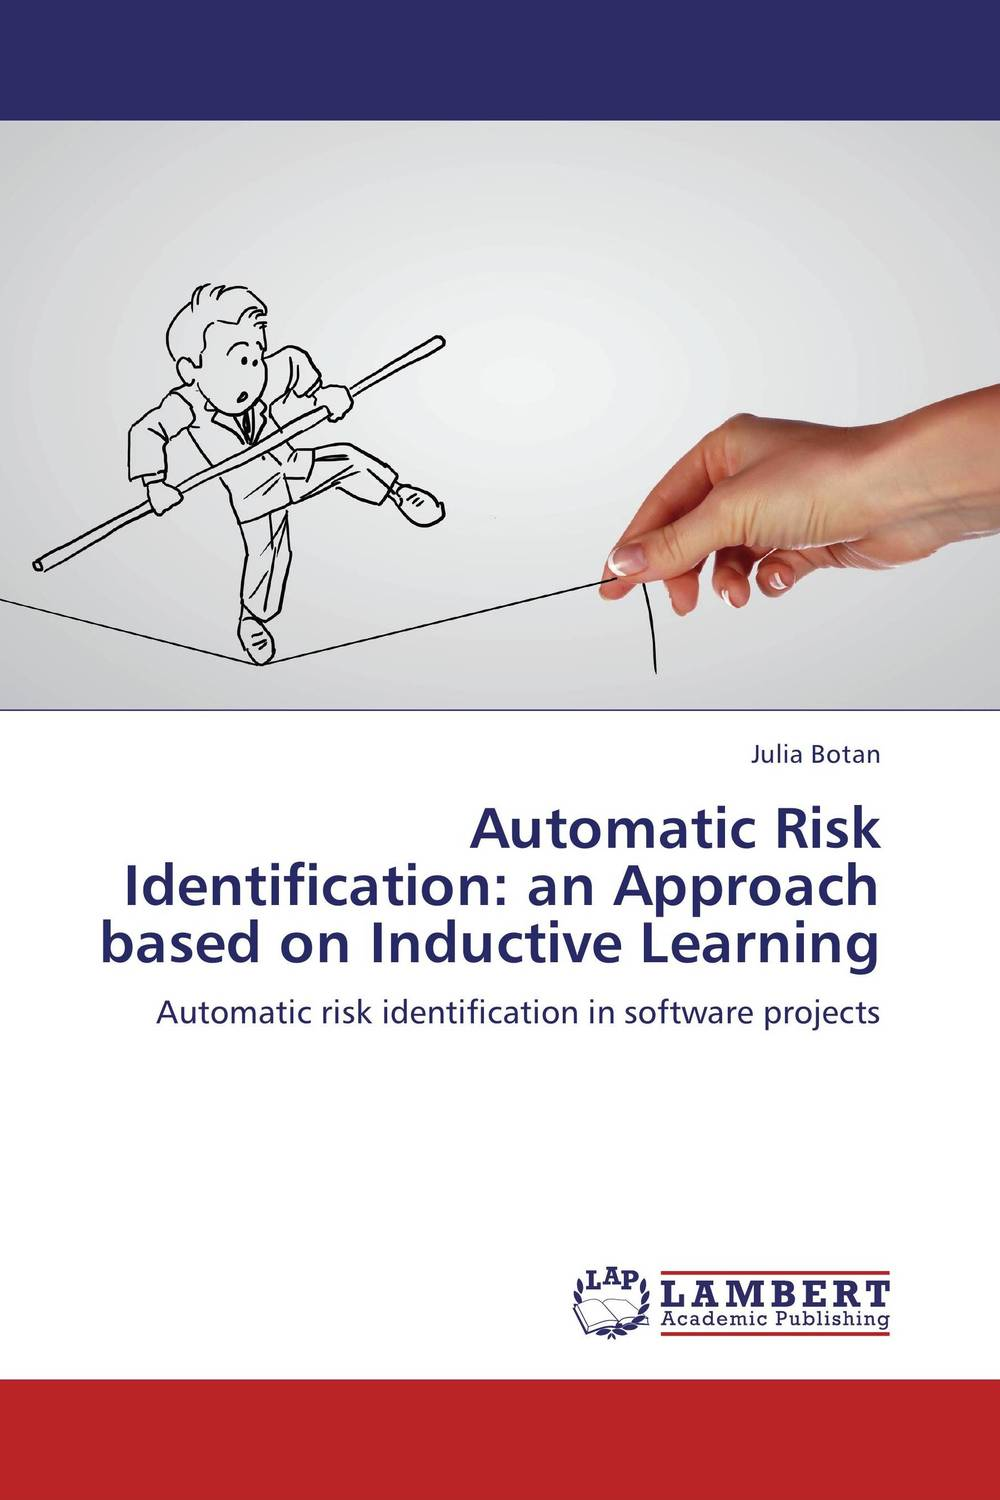 Automatic Risk Identification: an Approach based on Inductive Learning